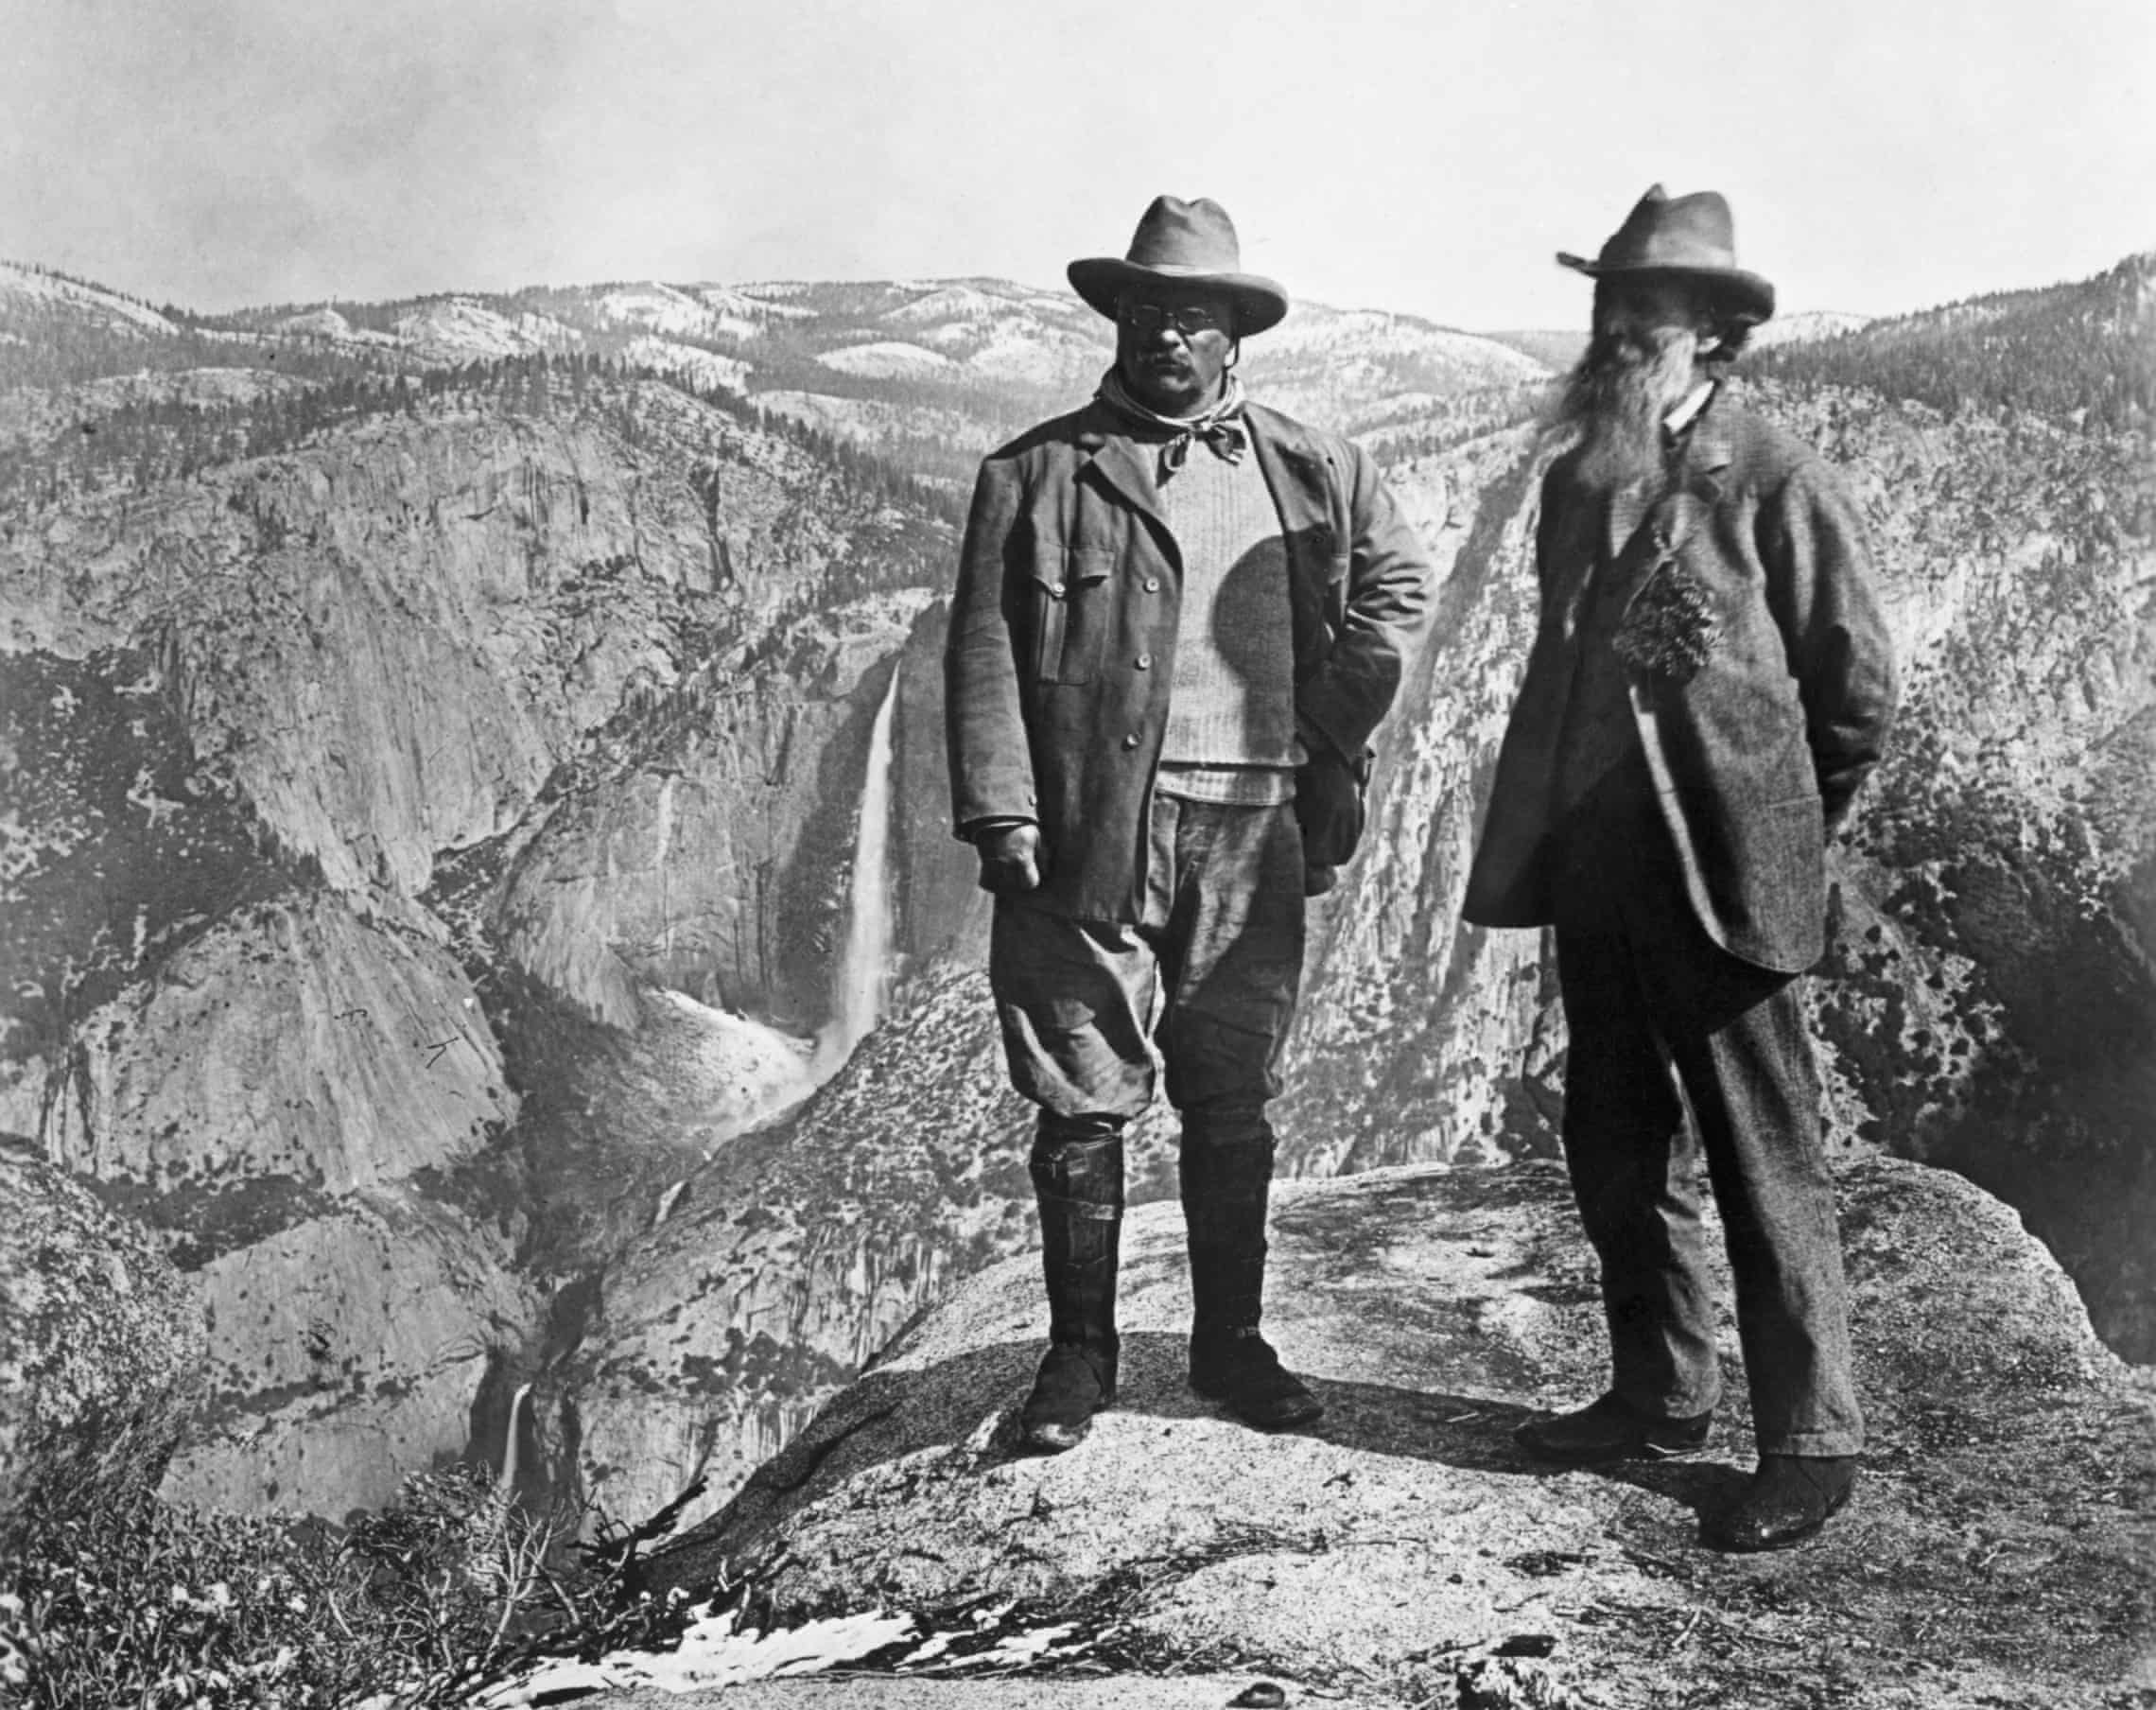 Theodore Roosevelt and John Muir above Yosemite Valley. Muir complained about the 'uncleanliness' of Native Americans. Photograph: Bettmann/Bettmann Archive